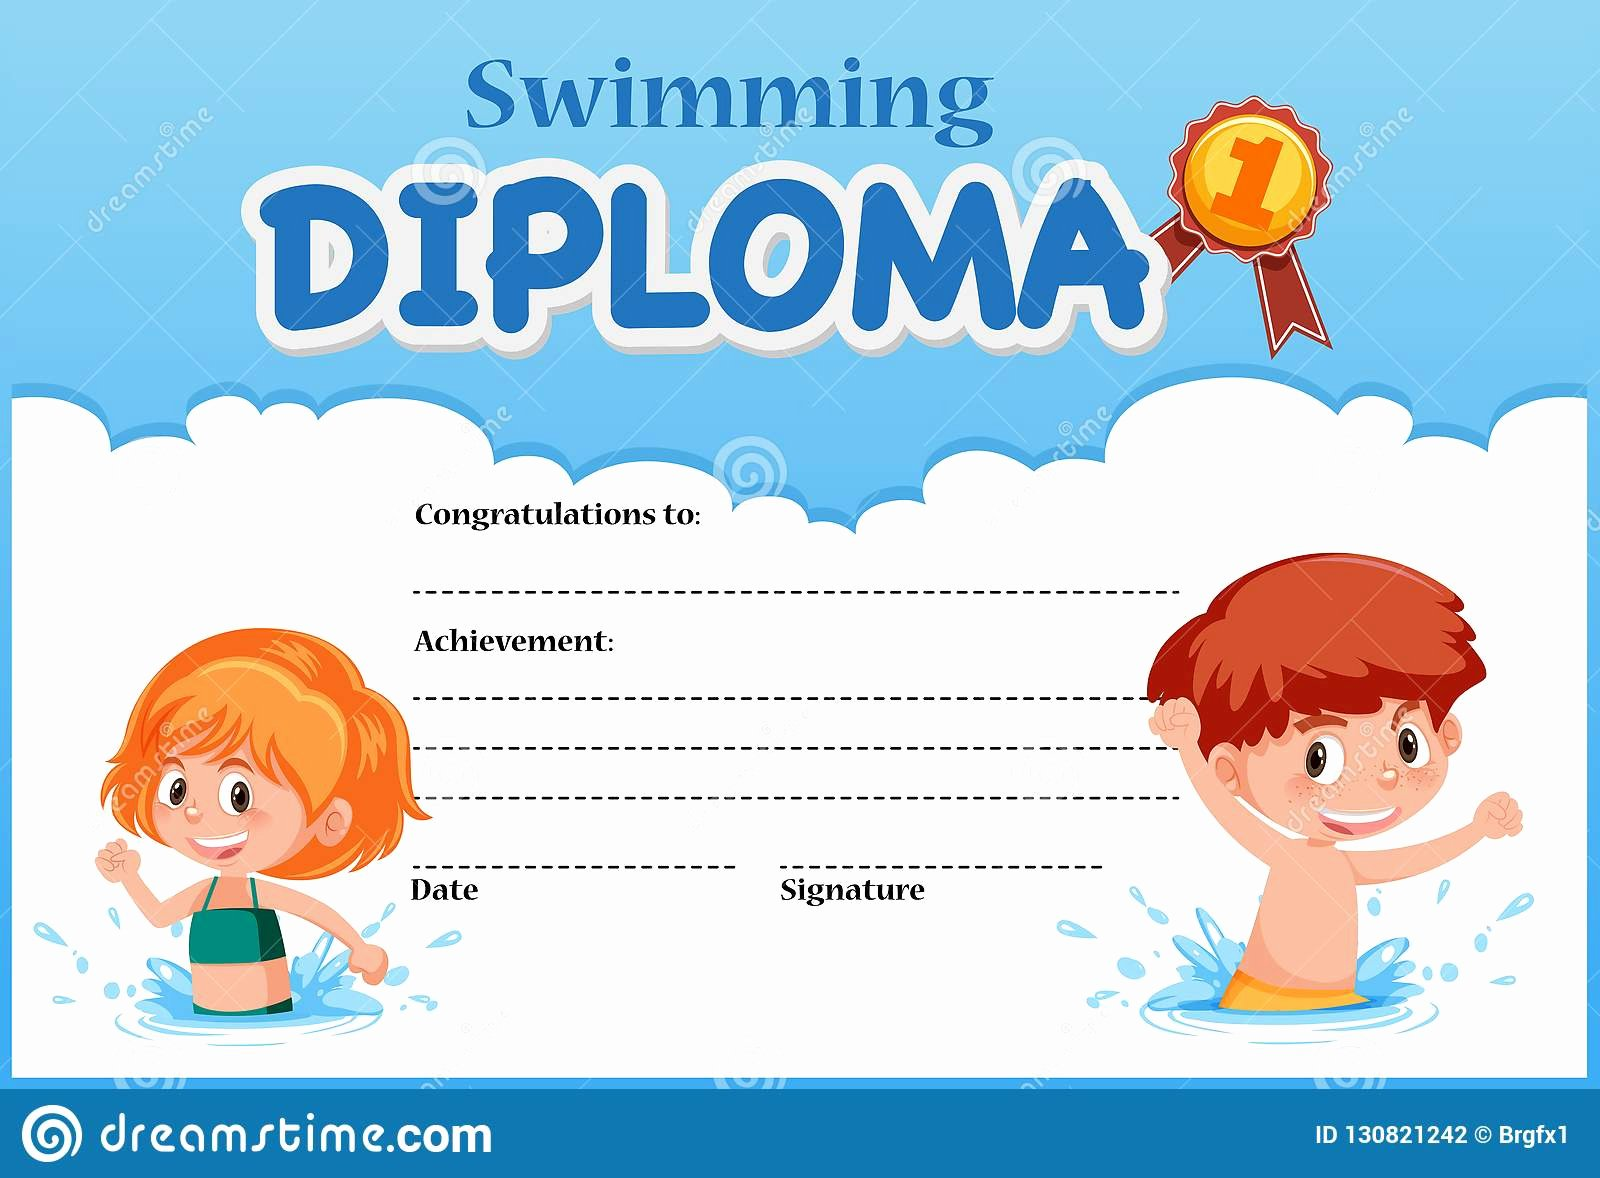 Swimming Certificate Template Free Elegant Swimming Diploma Certificate Template Stock Vector